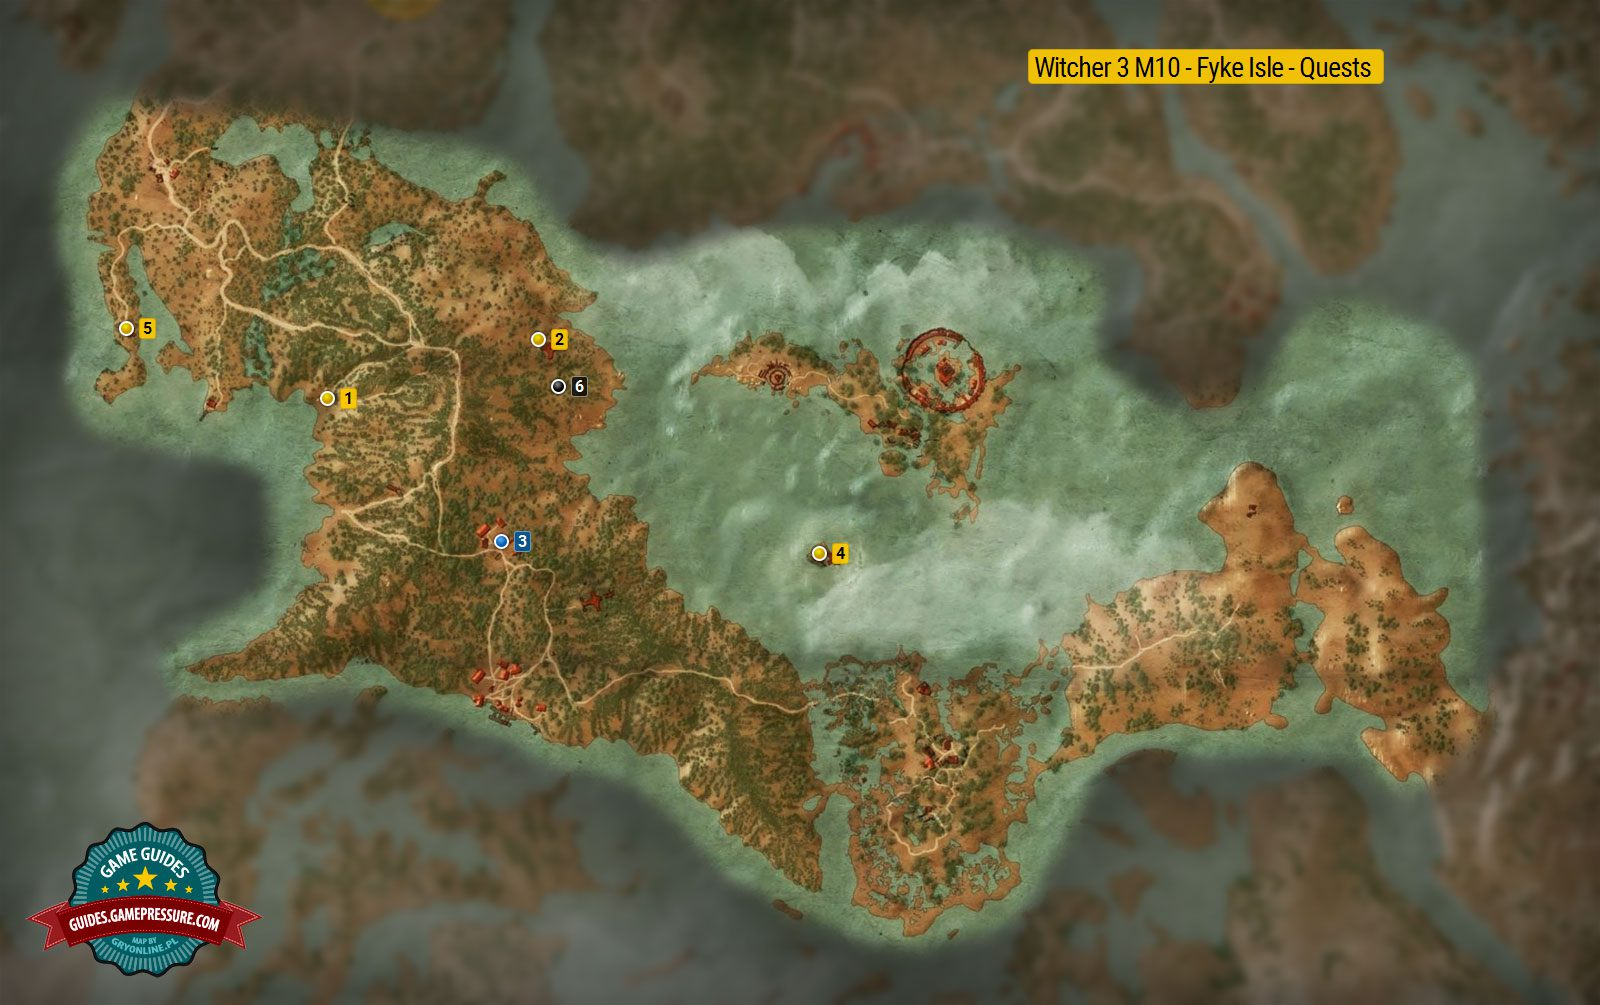 Witcher 3 M10 - Fyke Isle - Quests